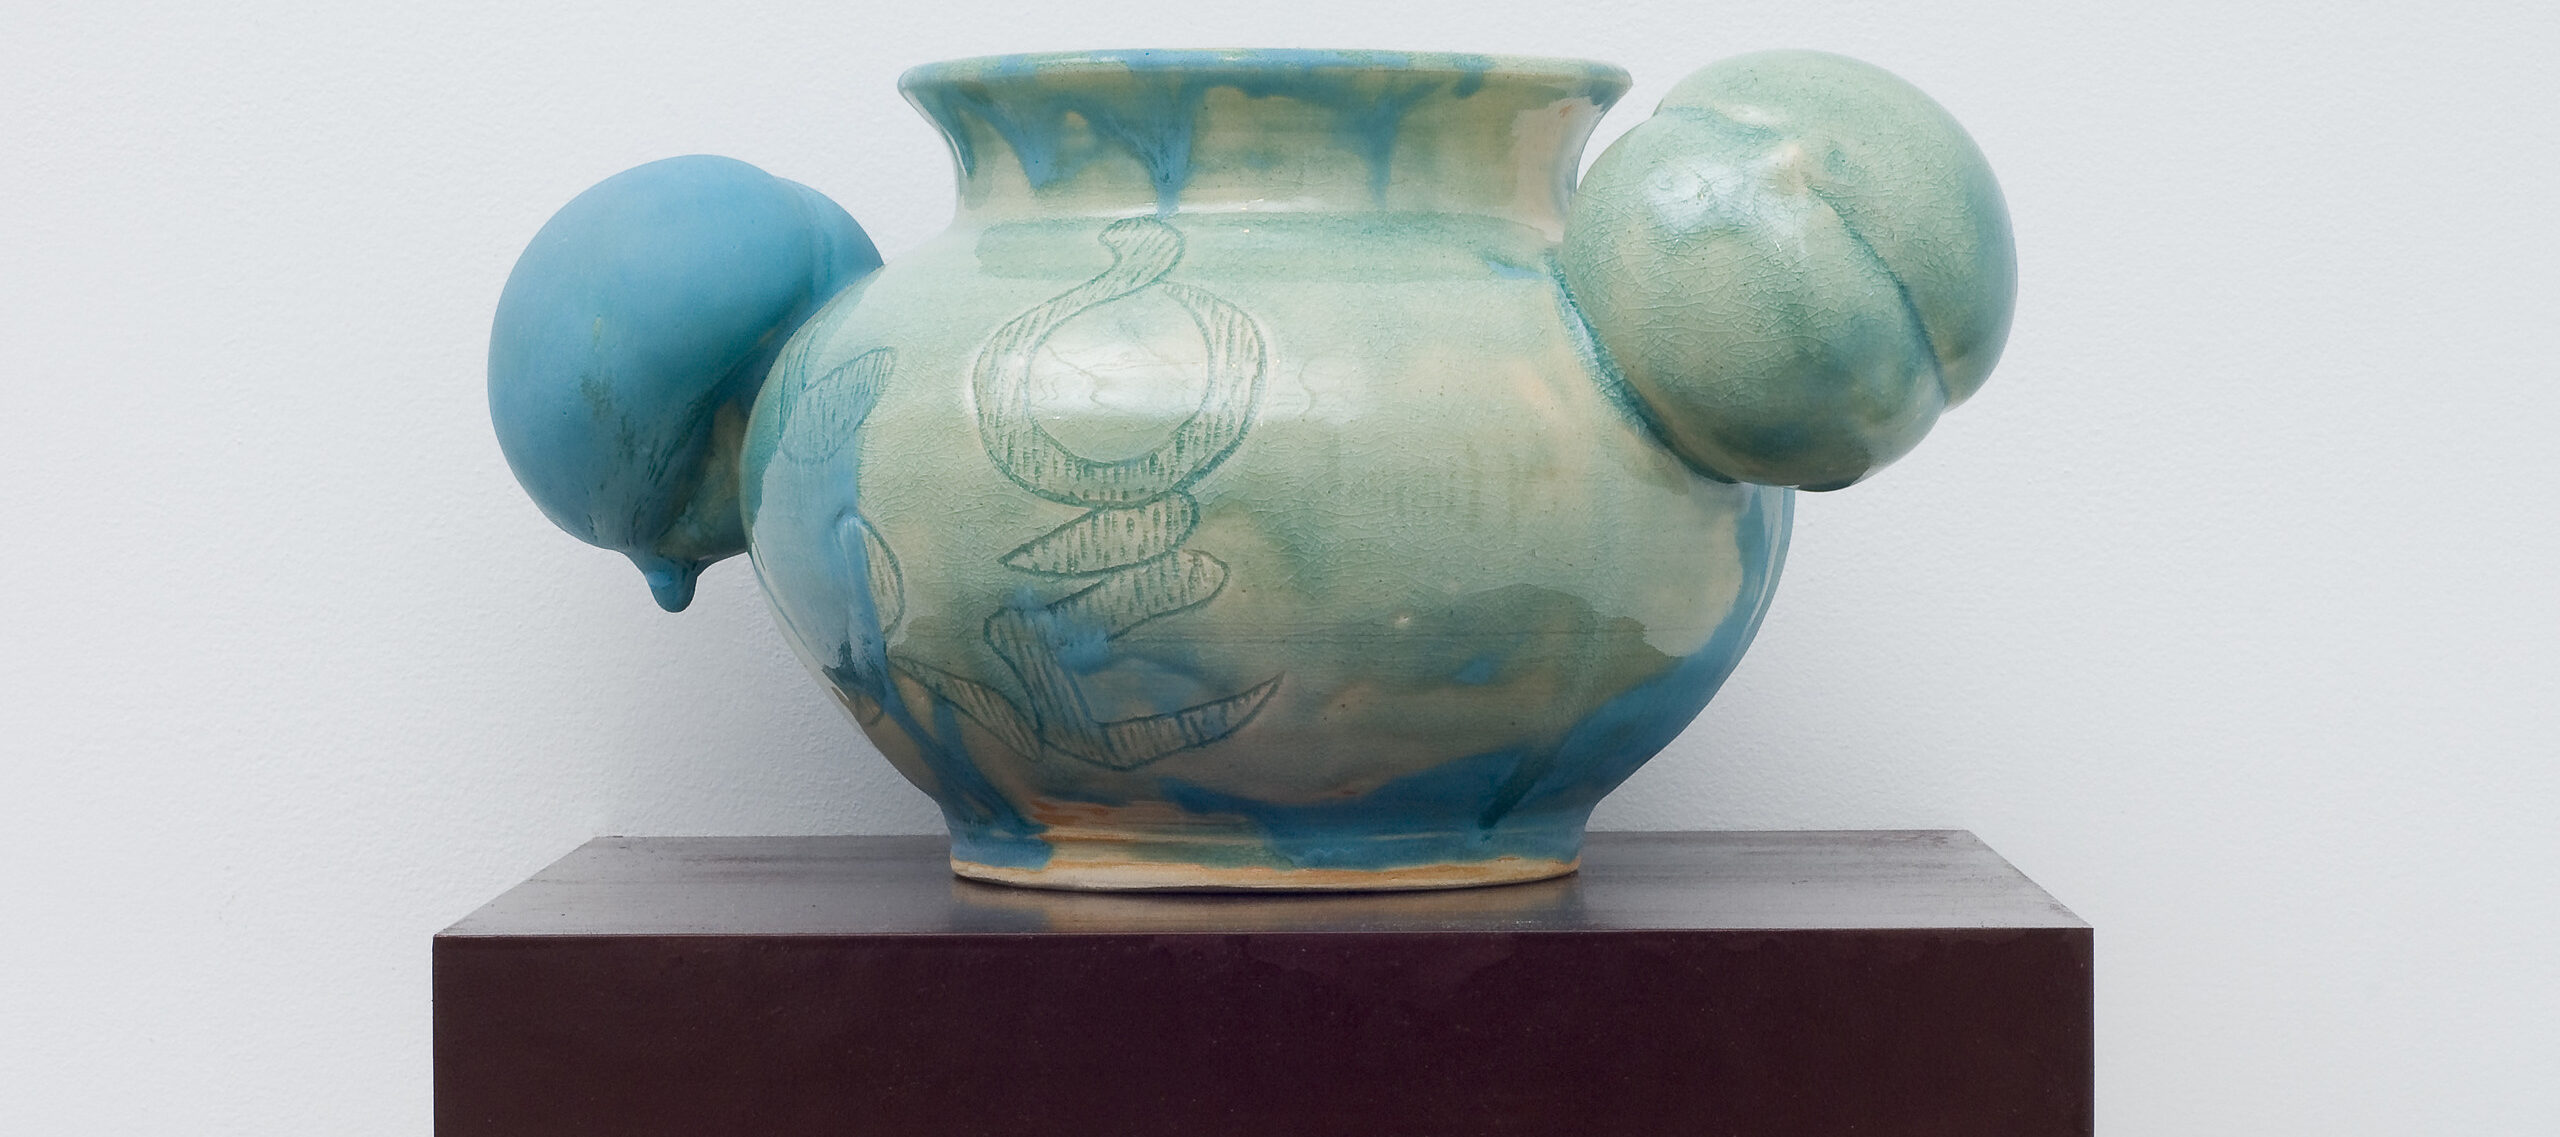 A round, ceramic vessel glazed unevenly in glossy celadon has a bulging body incised with abstract shapes. Matte turquoise glaze dribbling down from the rim obscures portions of the pale green and fully coats one of two peach-shaped orbs projecting from either side of the neck.